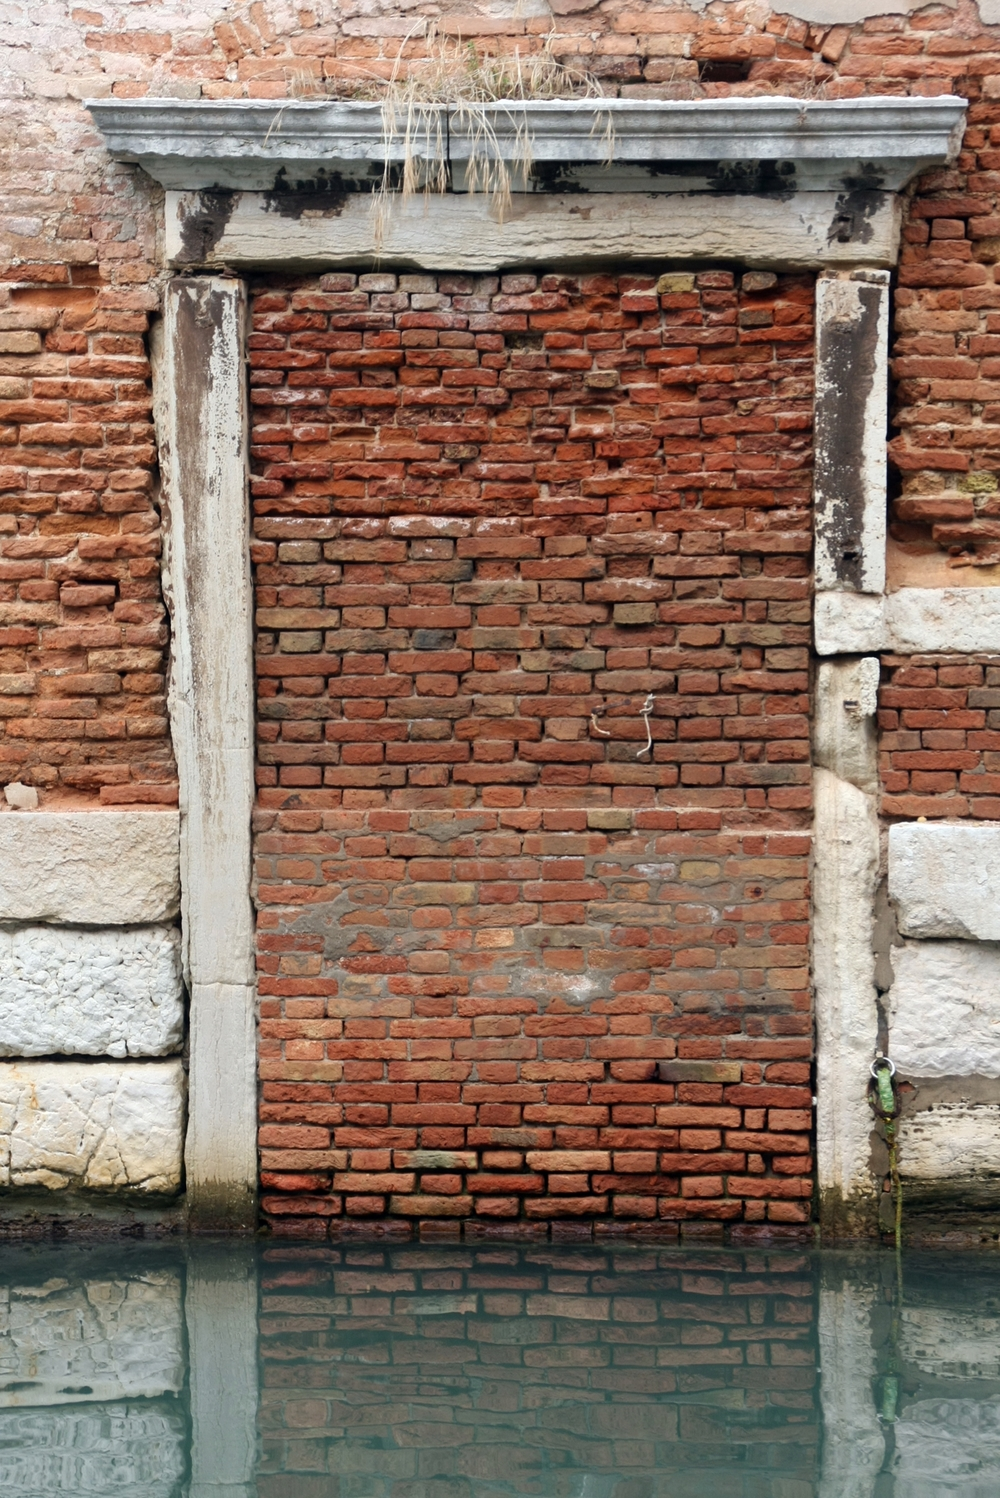 Bricked-in Doorway